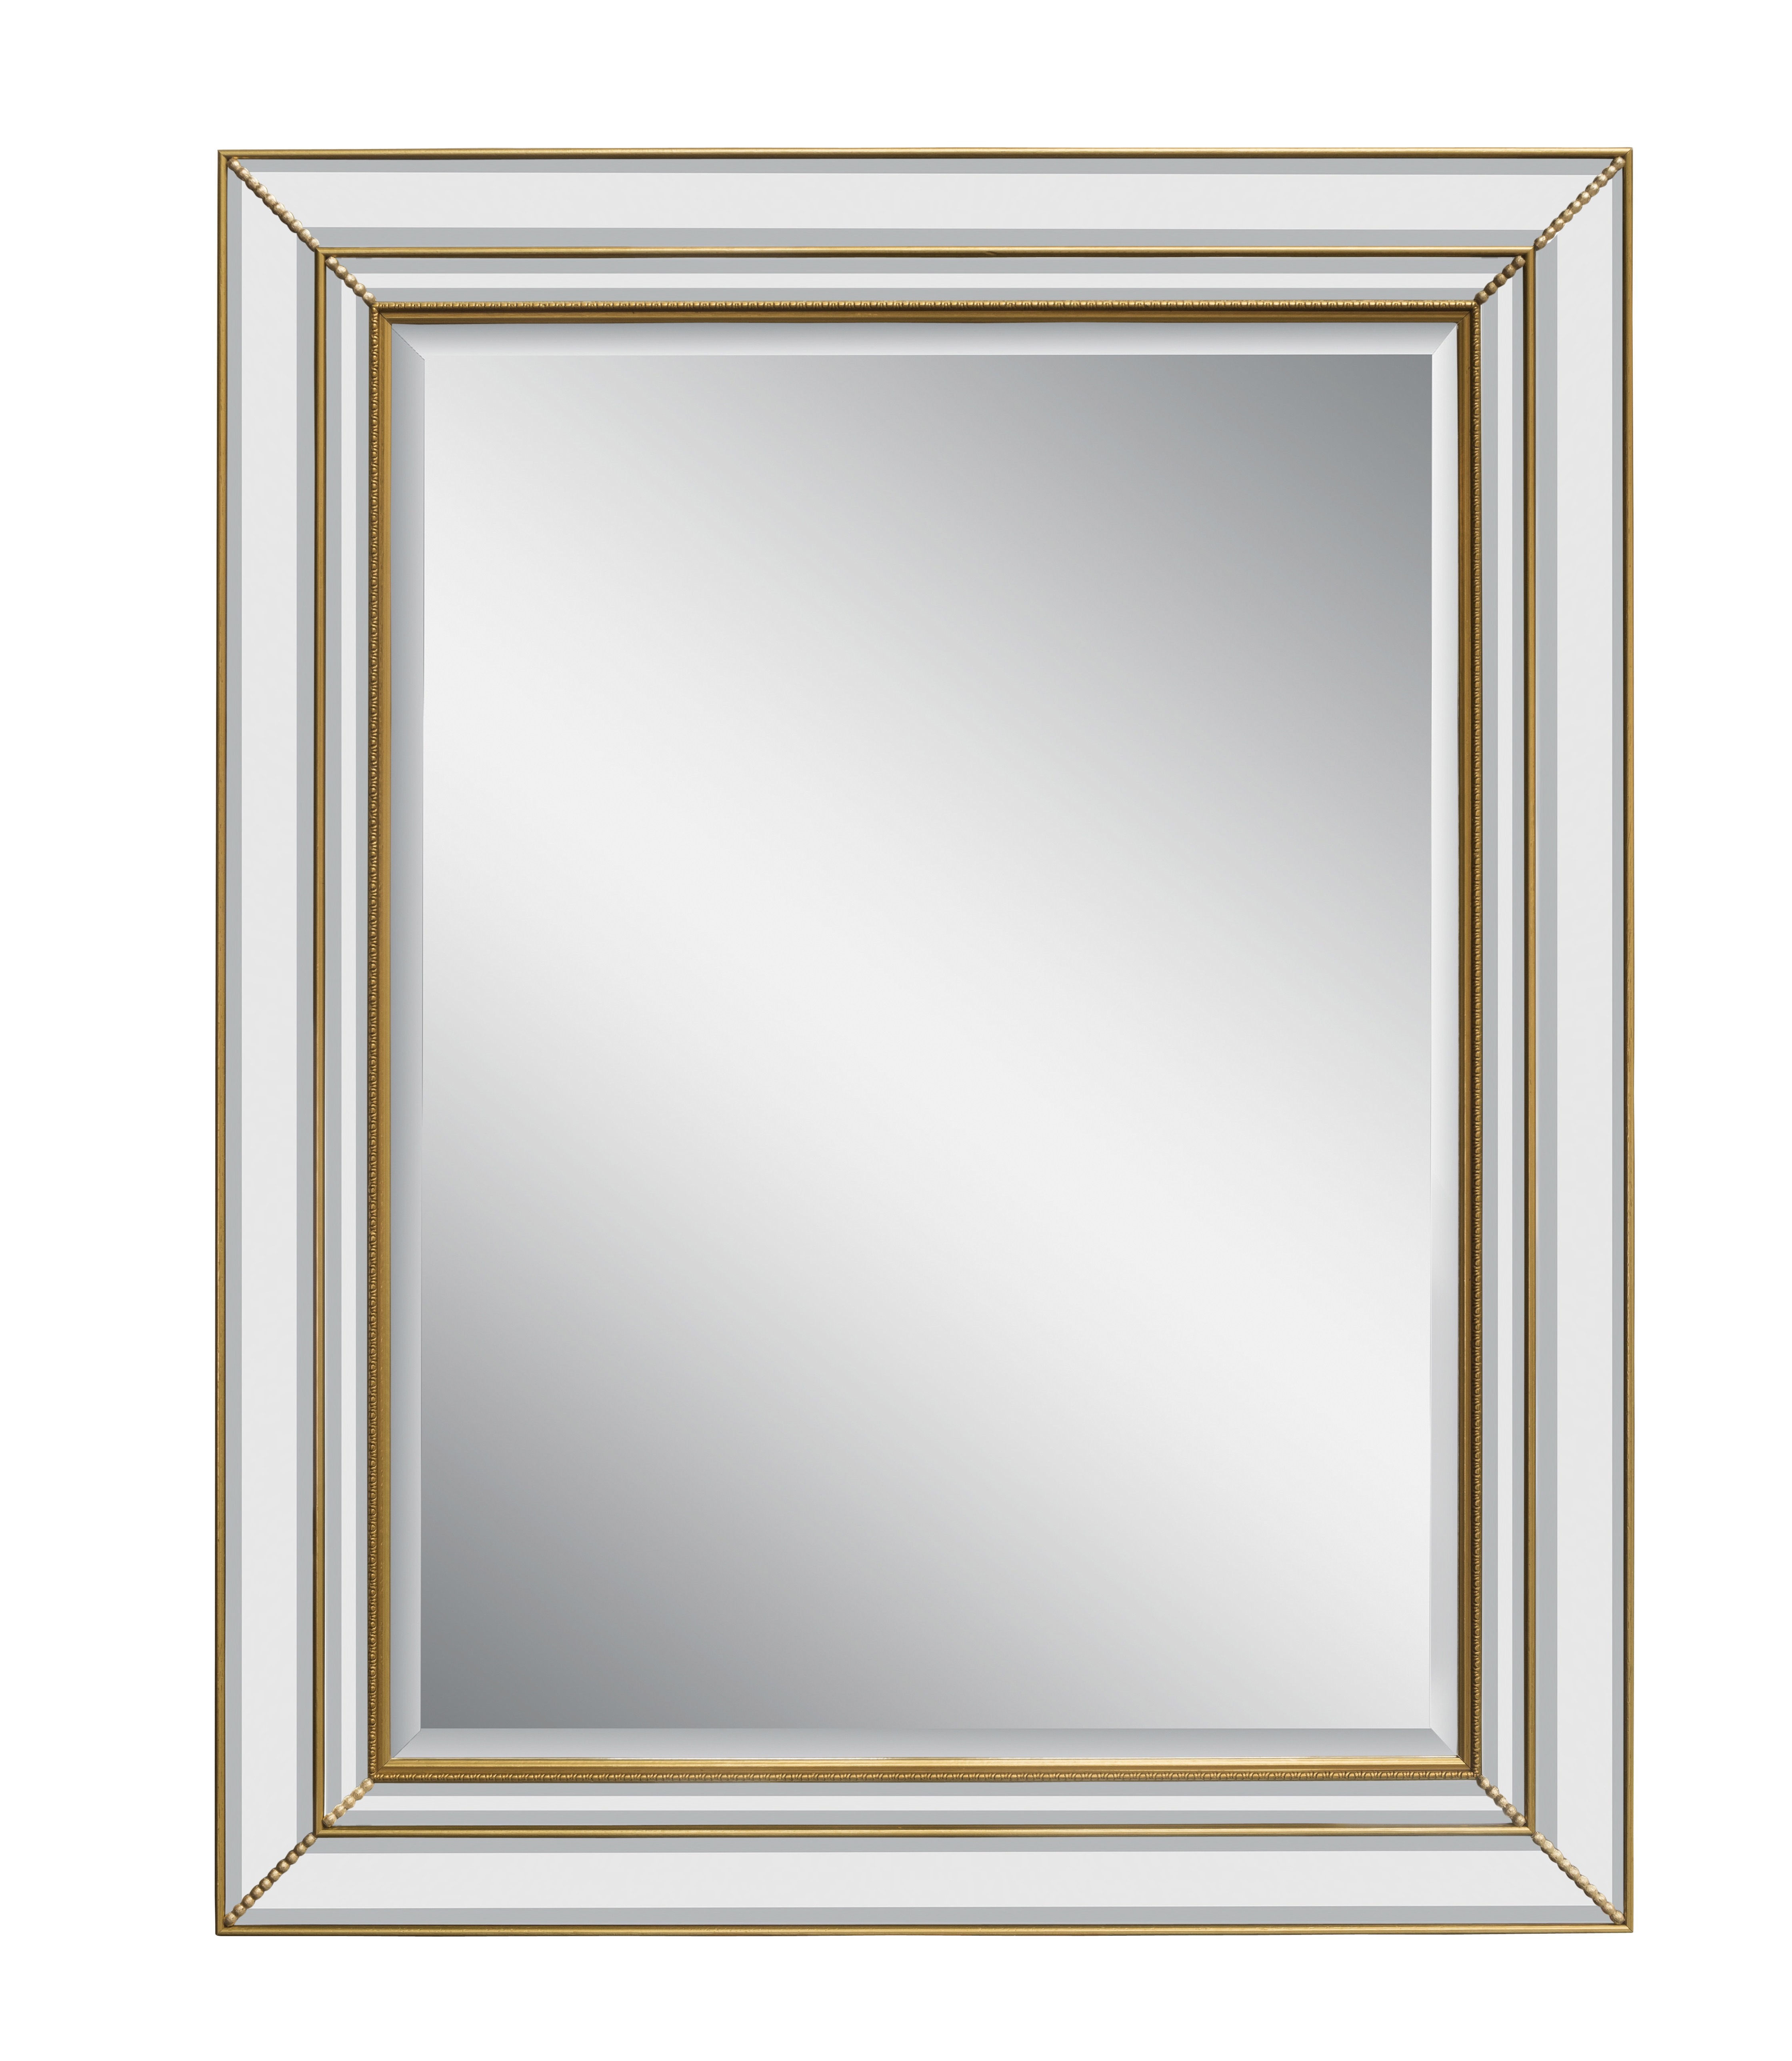 Liberty Gold Pearl Mirror Bedroom Mirrors For Sale Panfili Within Mirrors For Sale (Image 10 of 15)